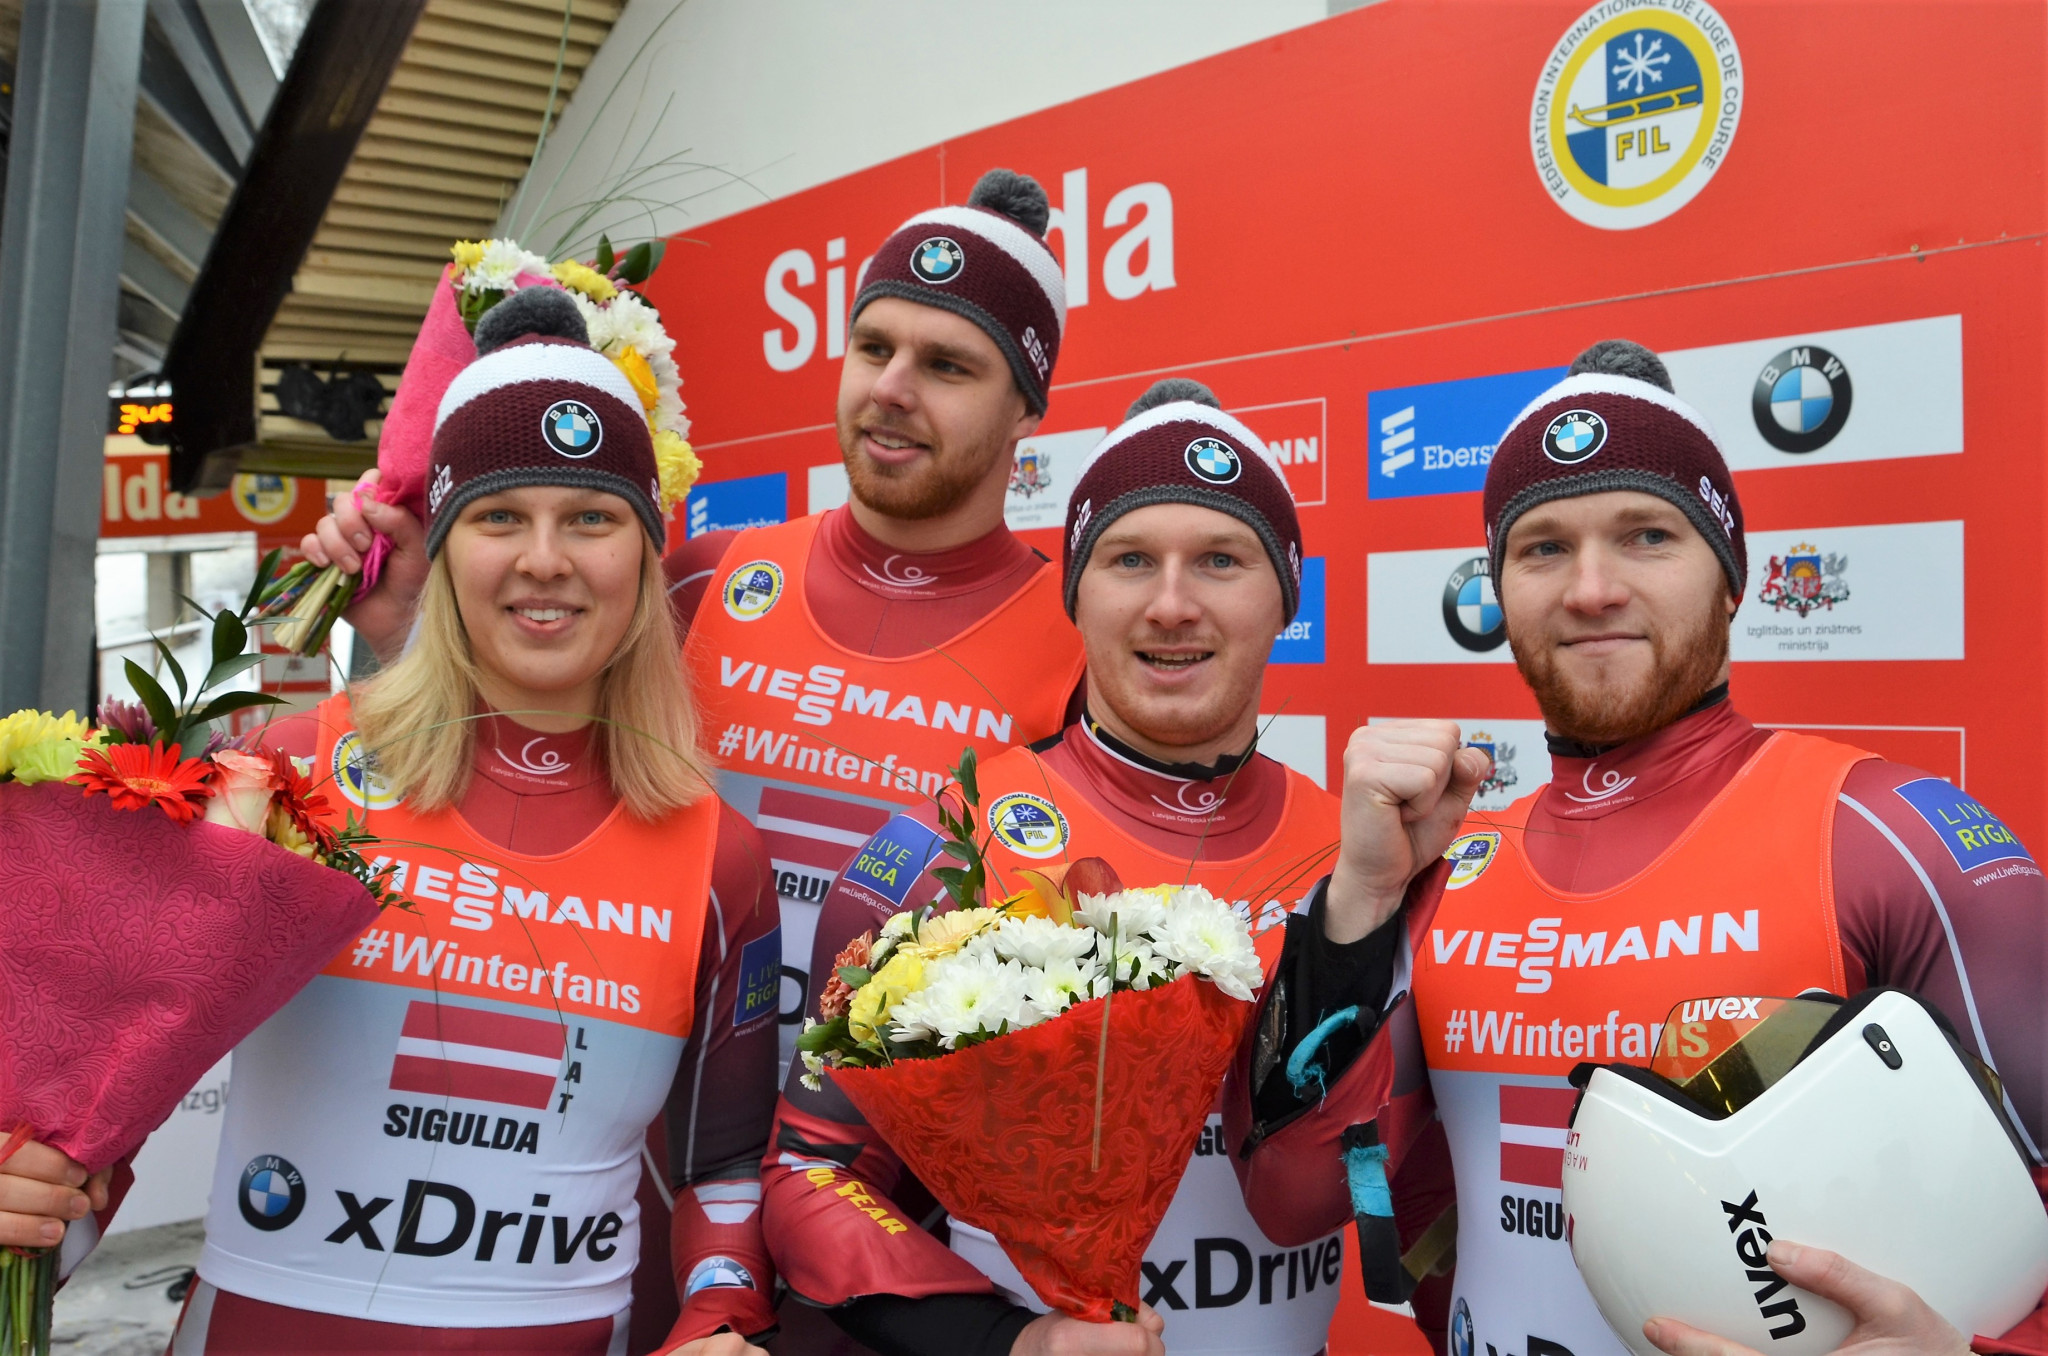 Latvia's relay team of Kendija Aparjode, Kristers Aparjods, Oskars Gudramovics and Peteris Kalnins delighted the crowd in Sigulda by winning the World Cup event today ©FIL